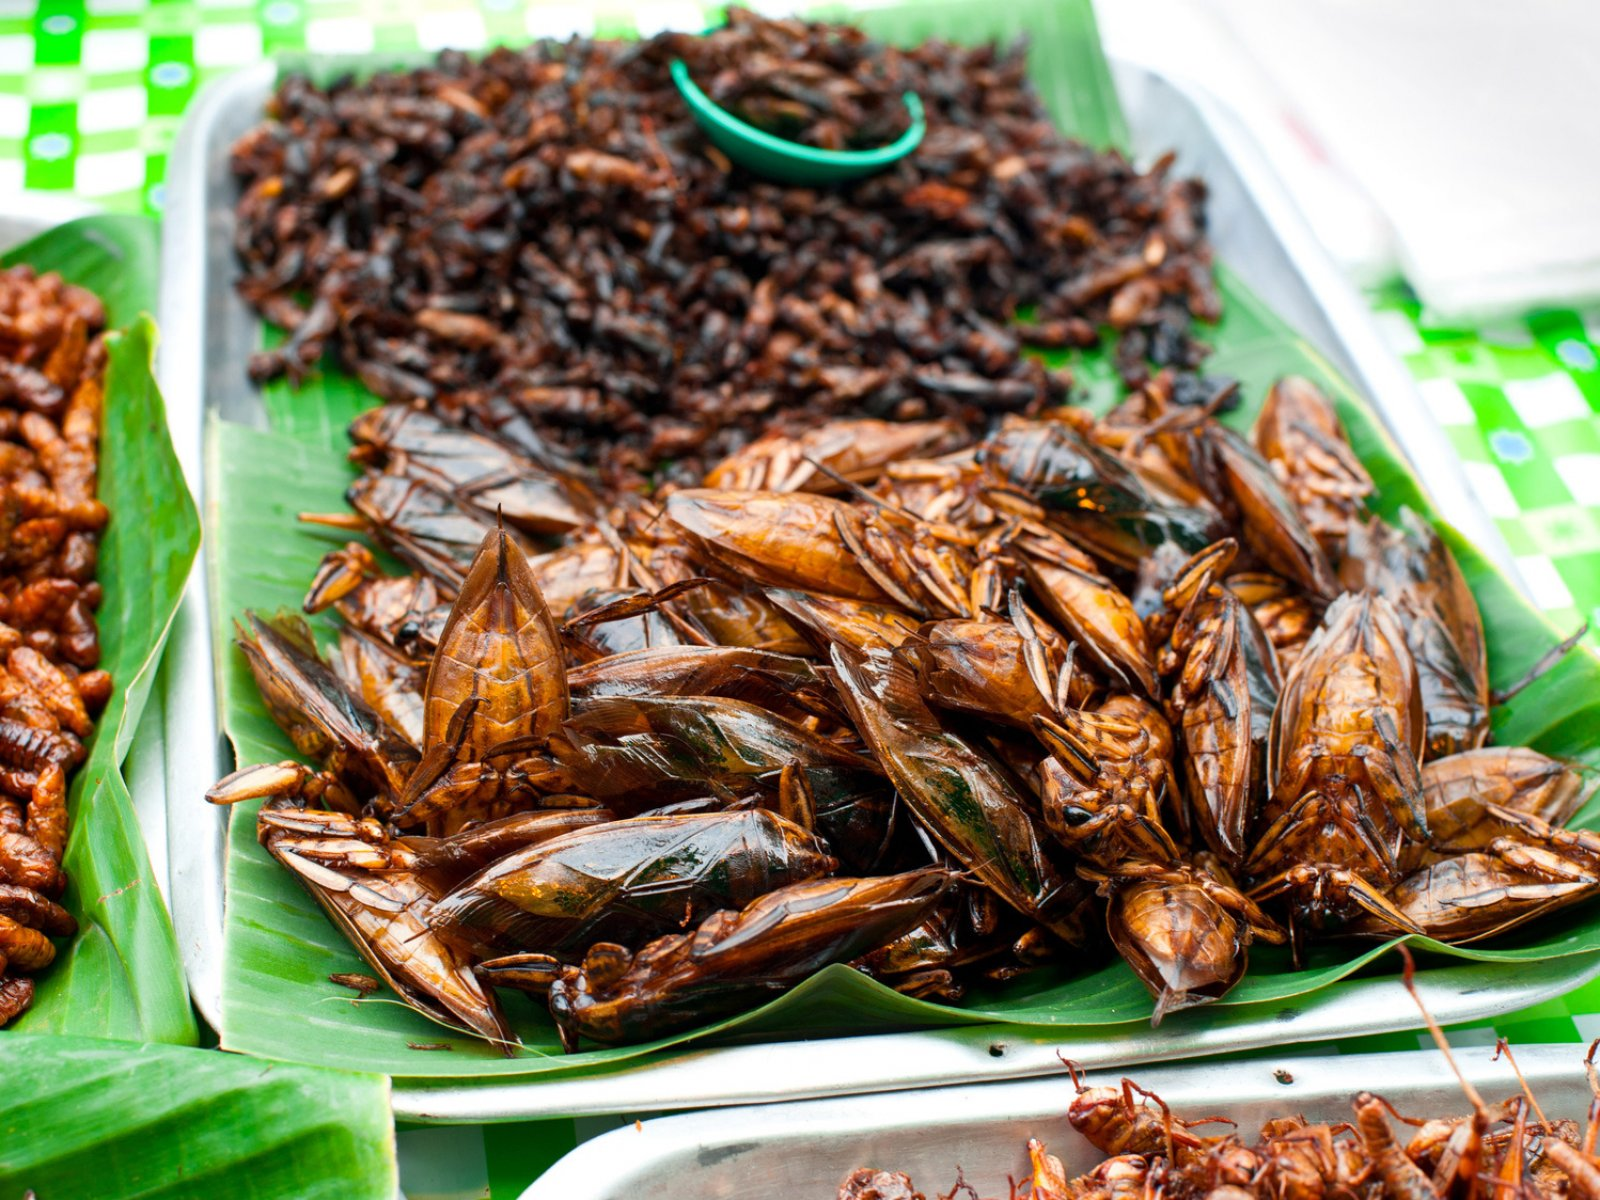 How to try the roasted crickets in Phuket